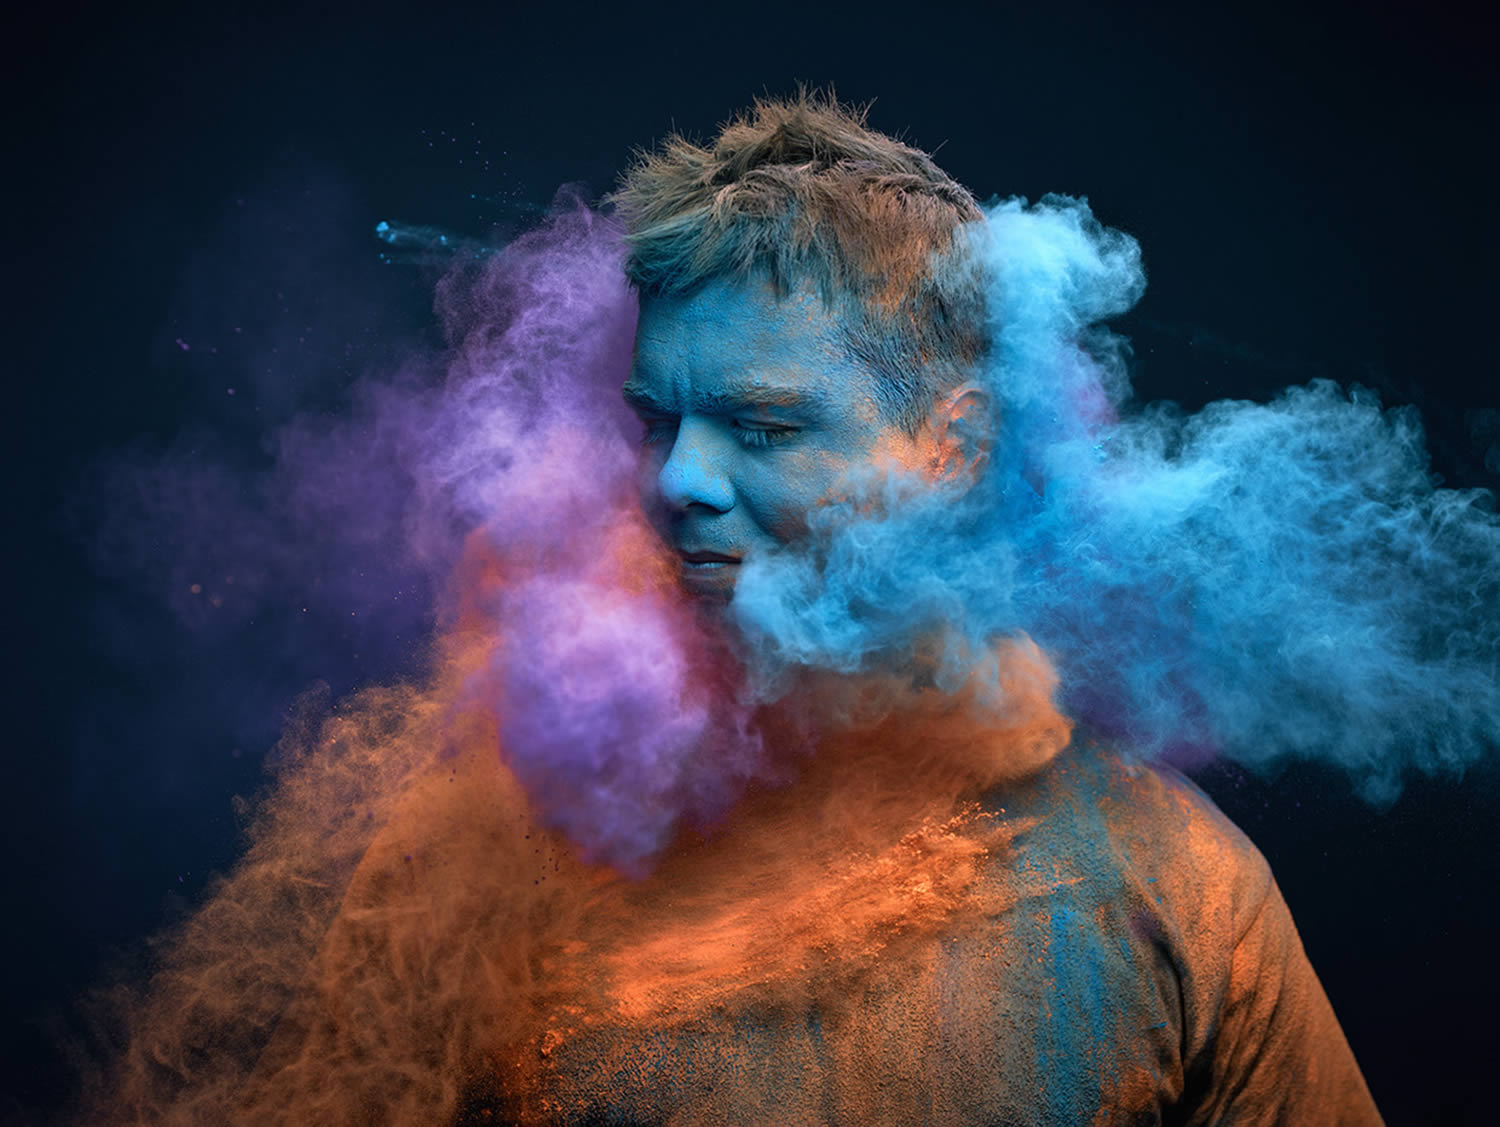 blue, purple, orange  powder thrown on man,Ars Thanea Portraits